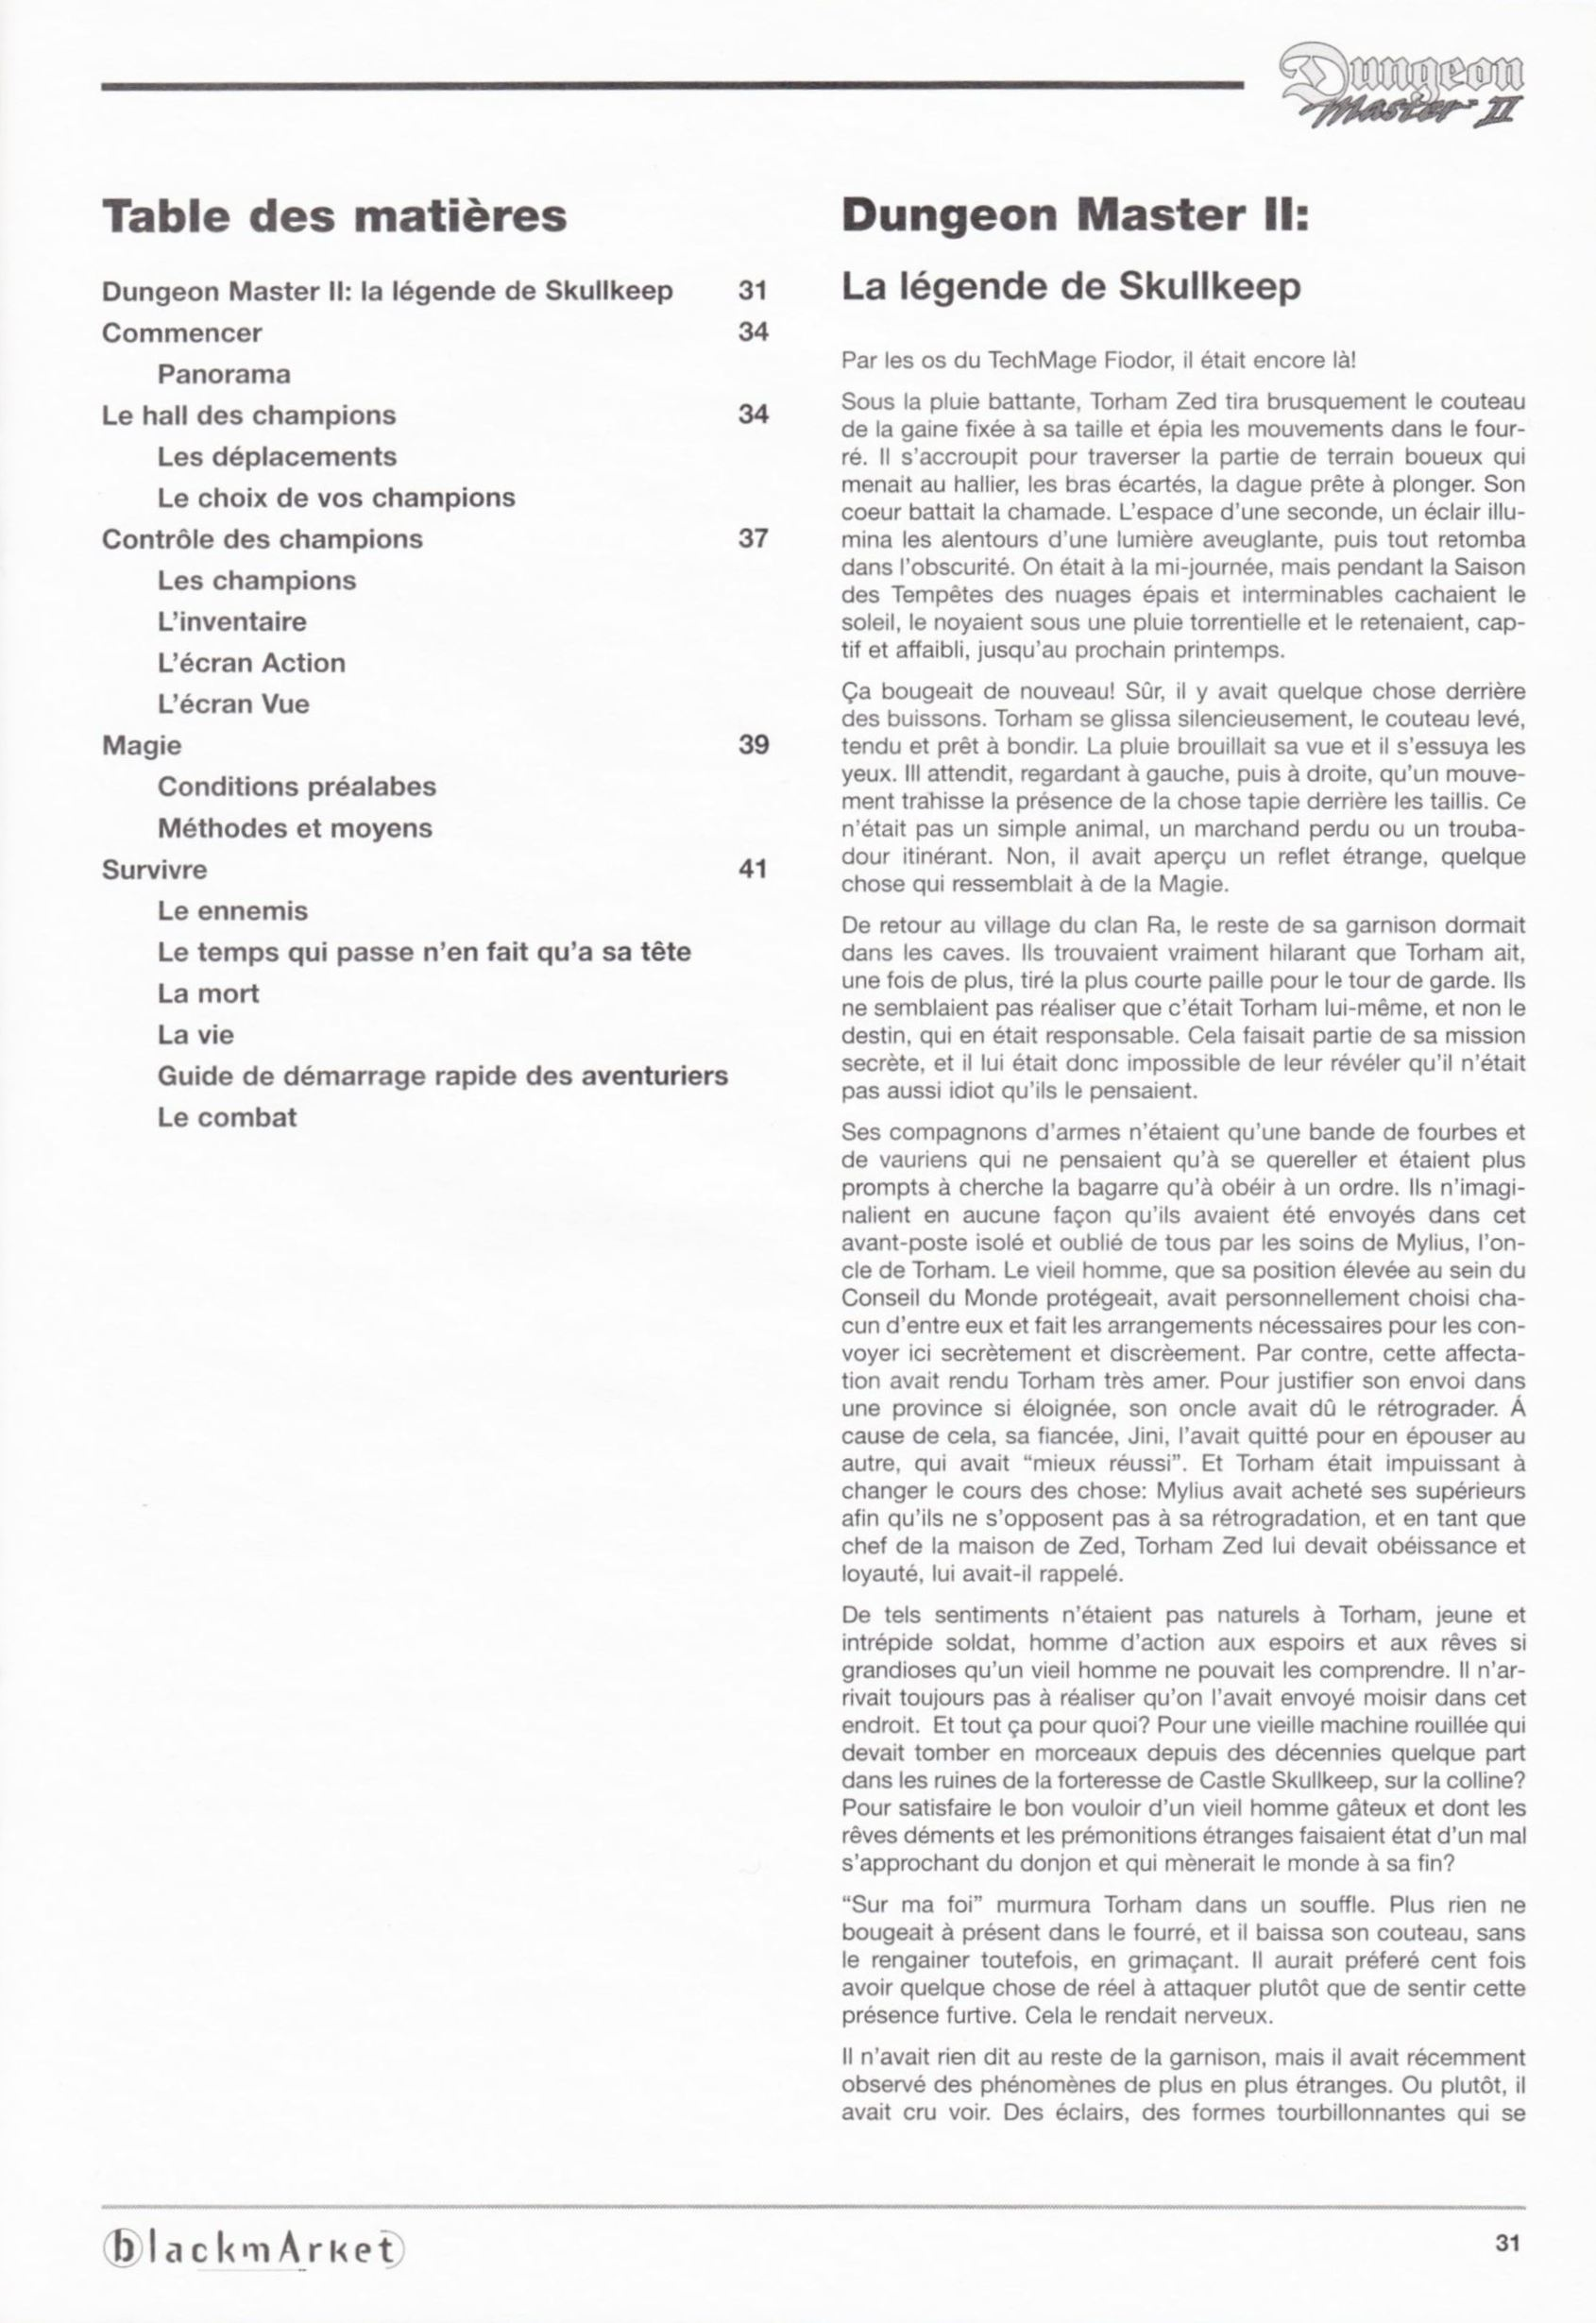 Game - Dungeon Master II - DE - PC - Blackmarket With Manual - Manual - Page 033 - Scan